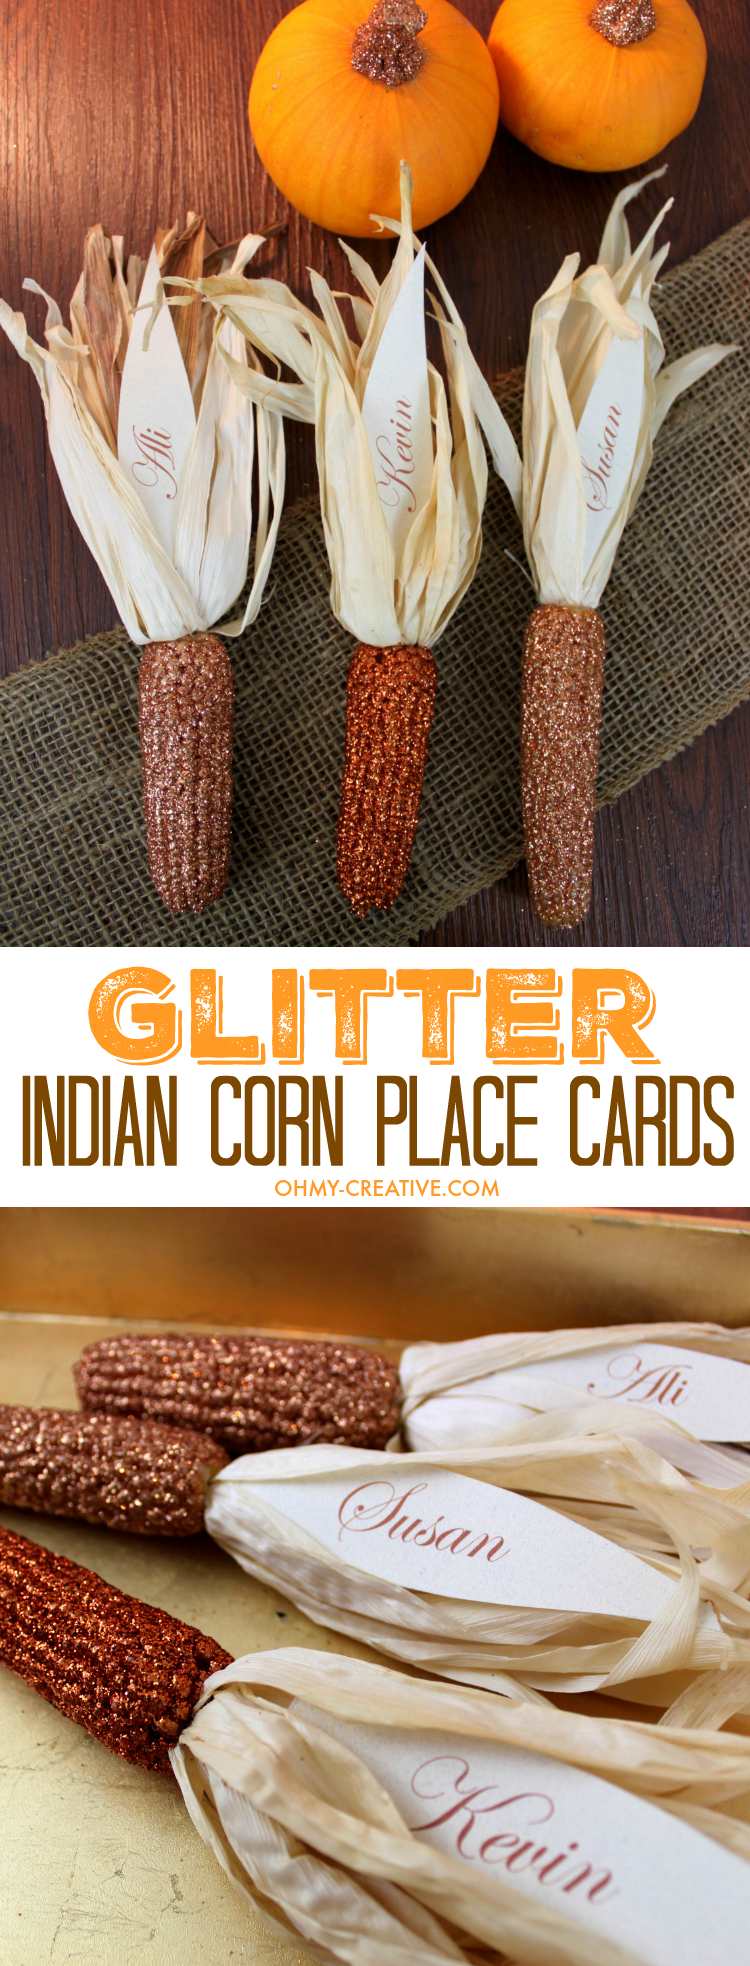 Thanksgiving will sparkle with these Glitter Indian Corn Place Cards  |  OHMY-CREATIVE.COM